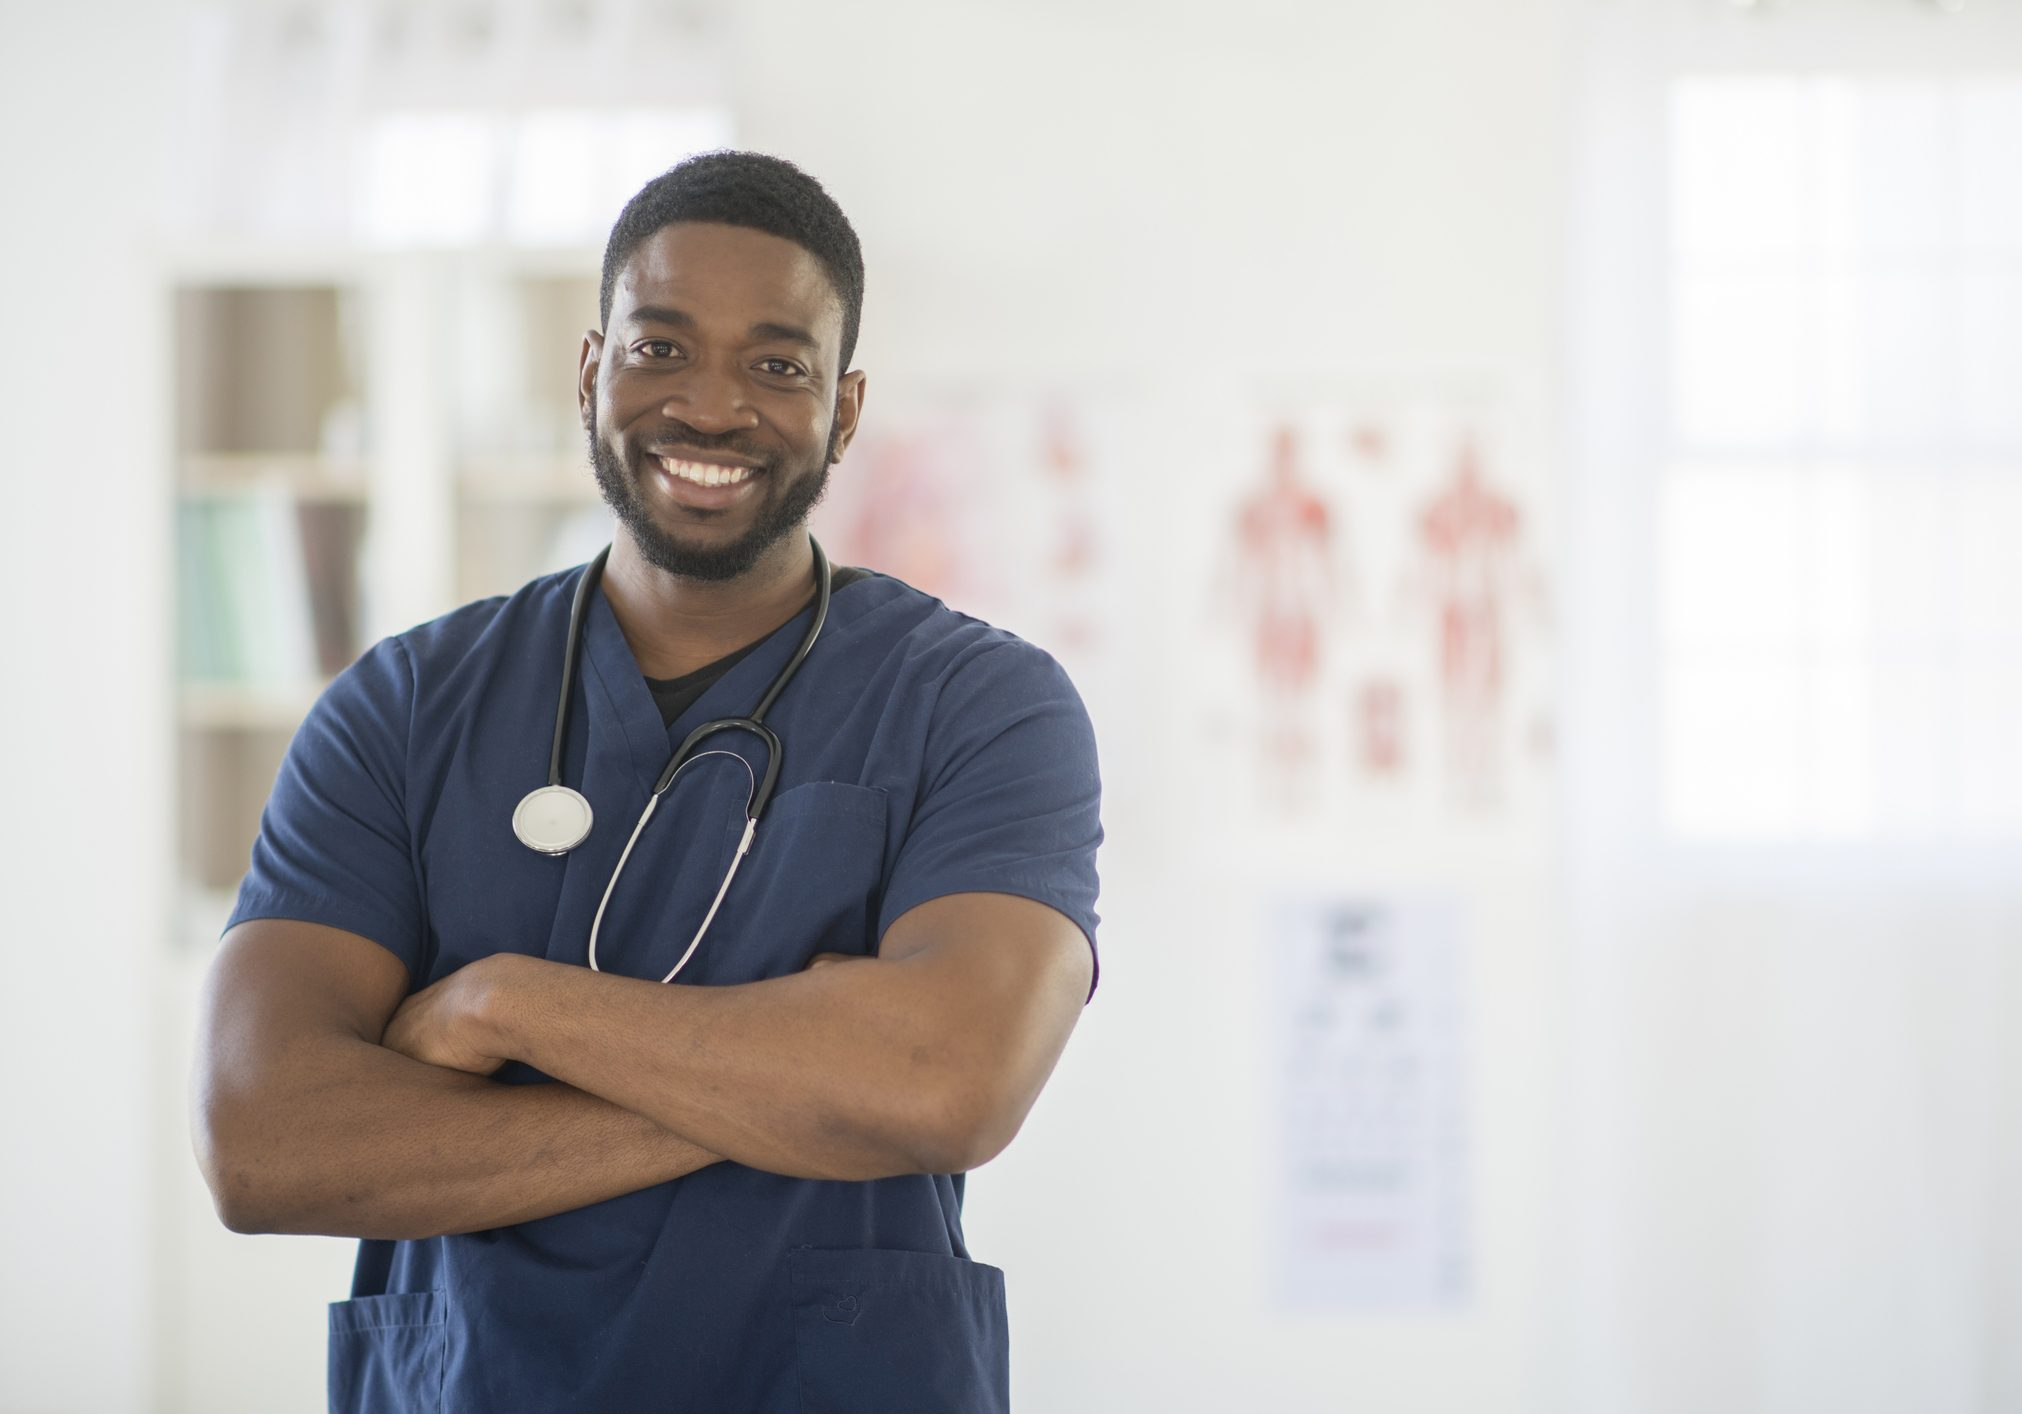 A male nurse is standing in the doctor's office wearing scrubs and a stethoscope. He is smiling and looking at the camera.